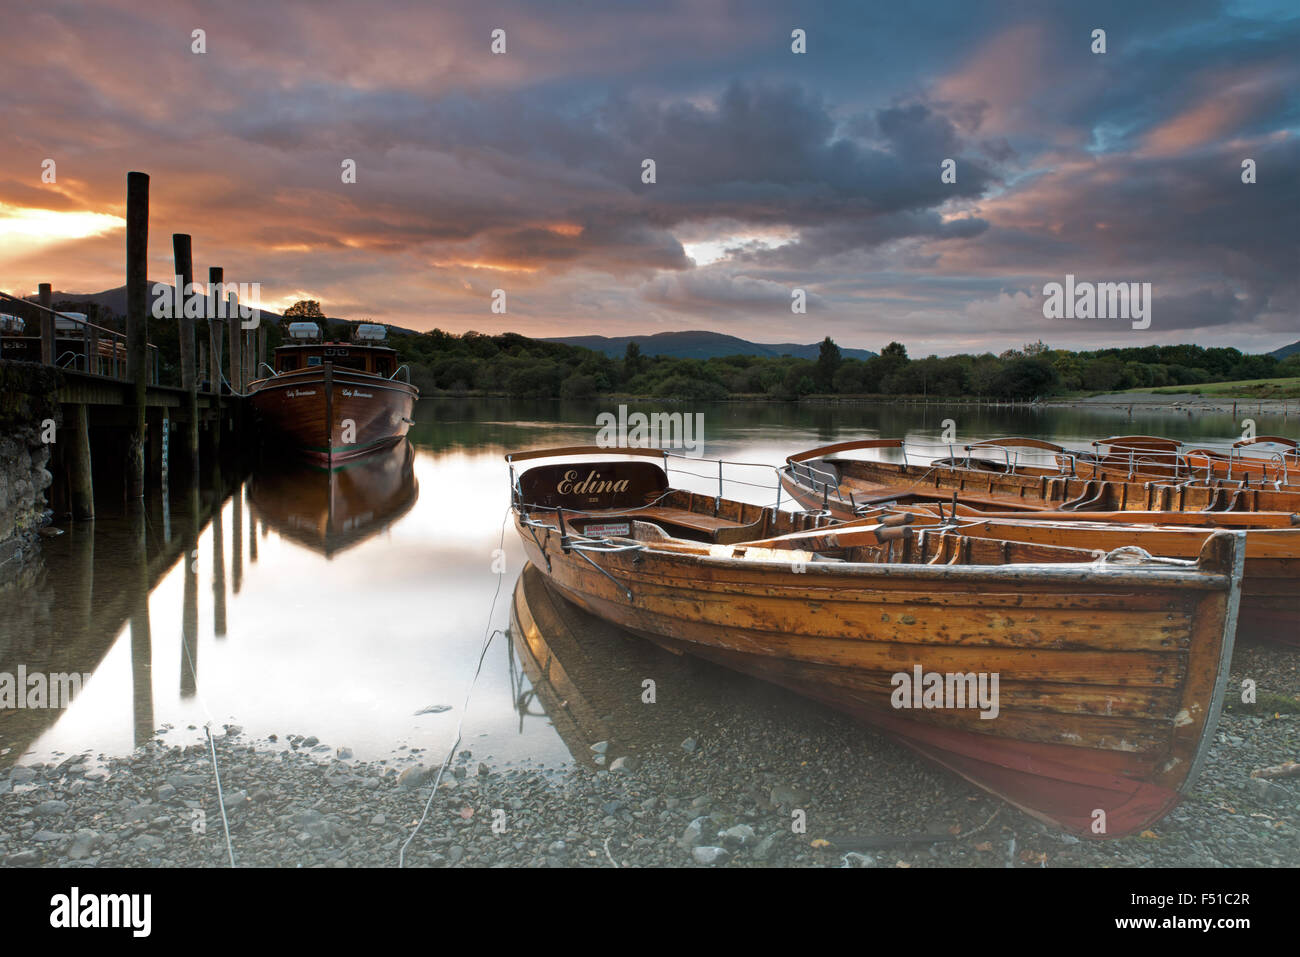 Barques sur la rive du Derwent Water près de Keswick au coucher du soleil, Lake District, Cumbria, England, Photo Stock